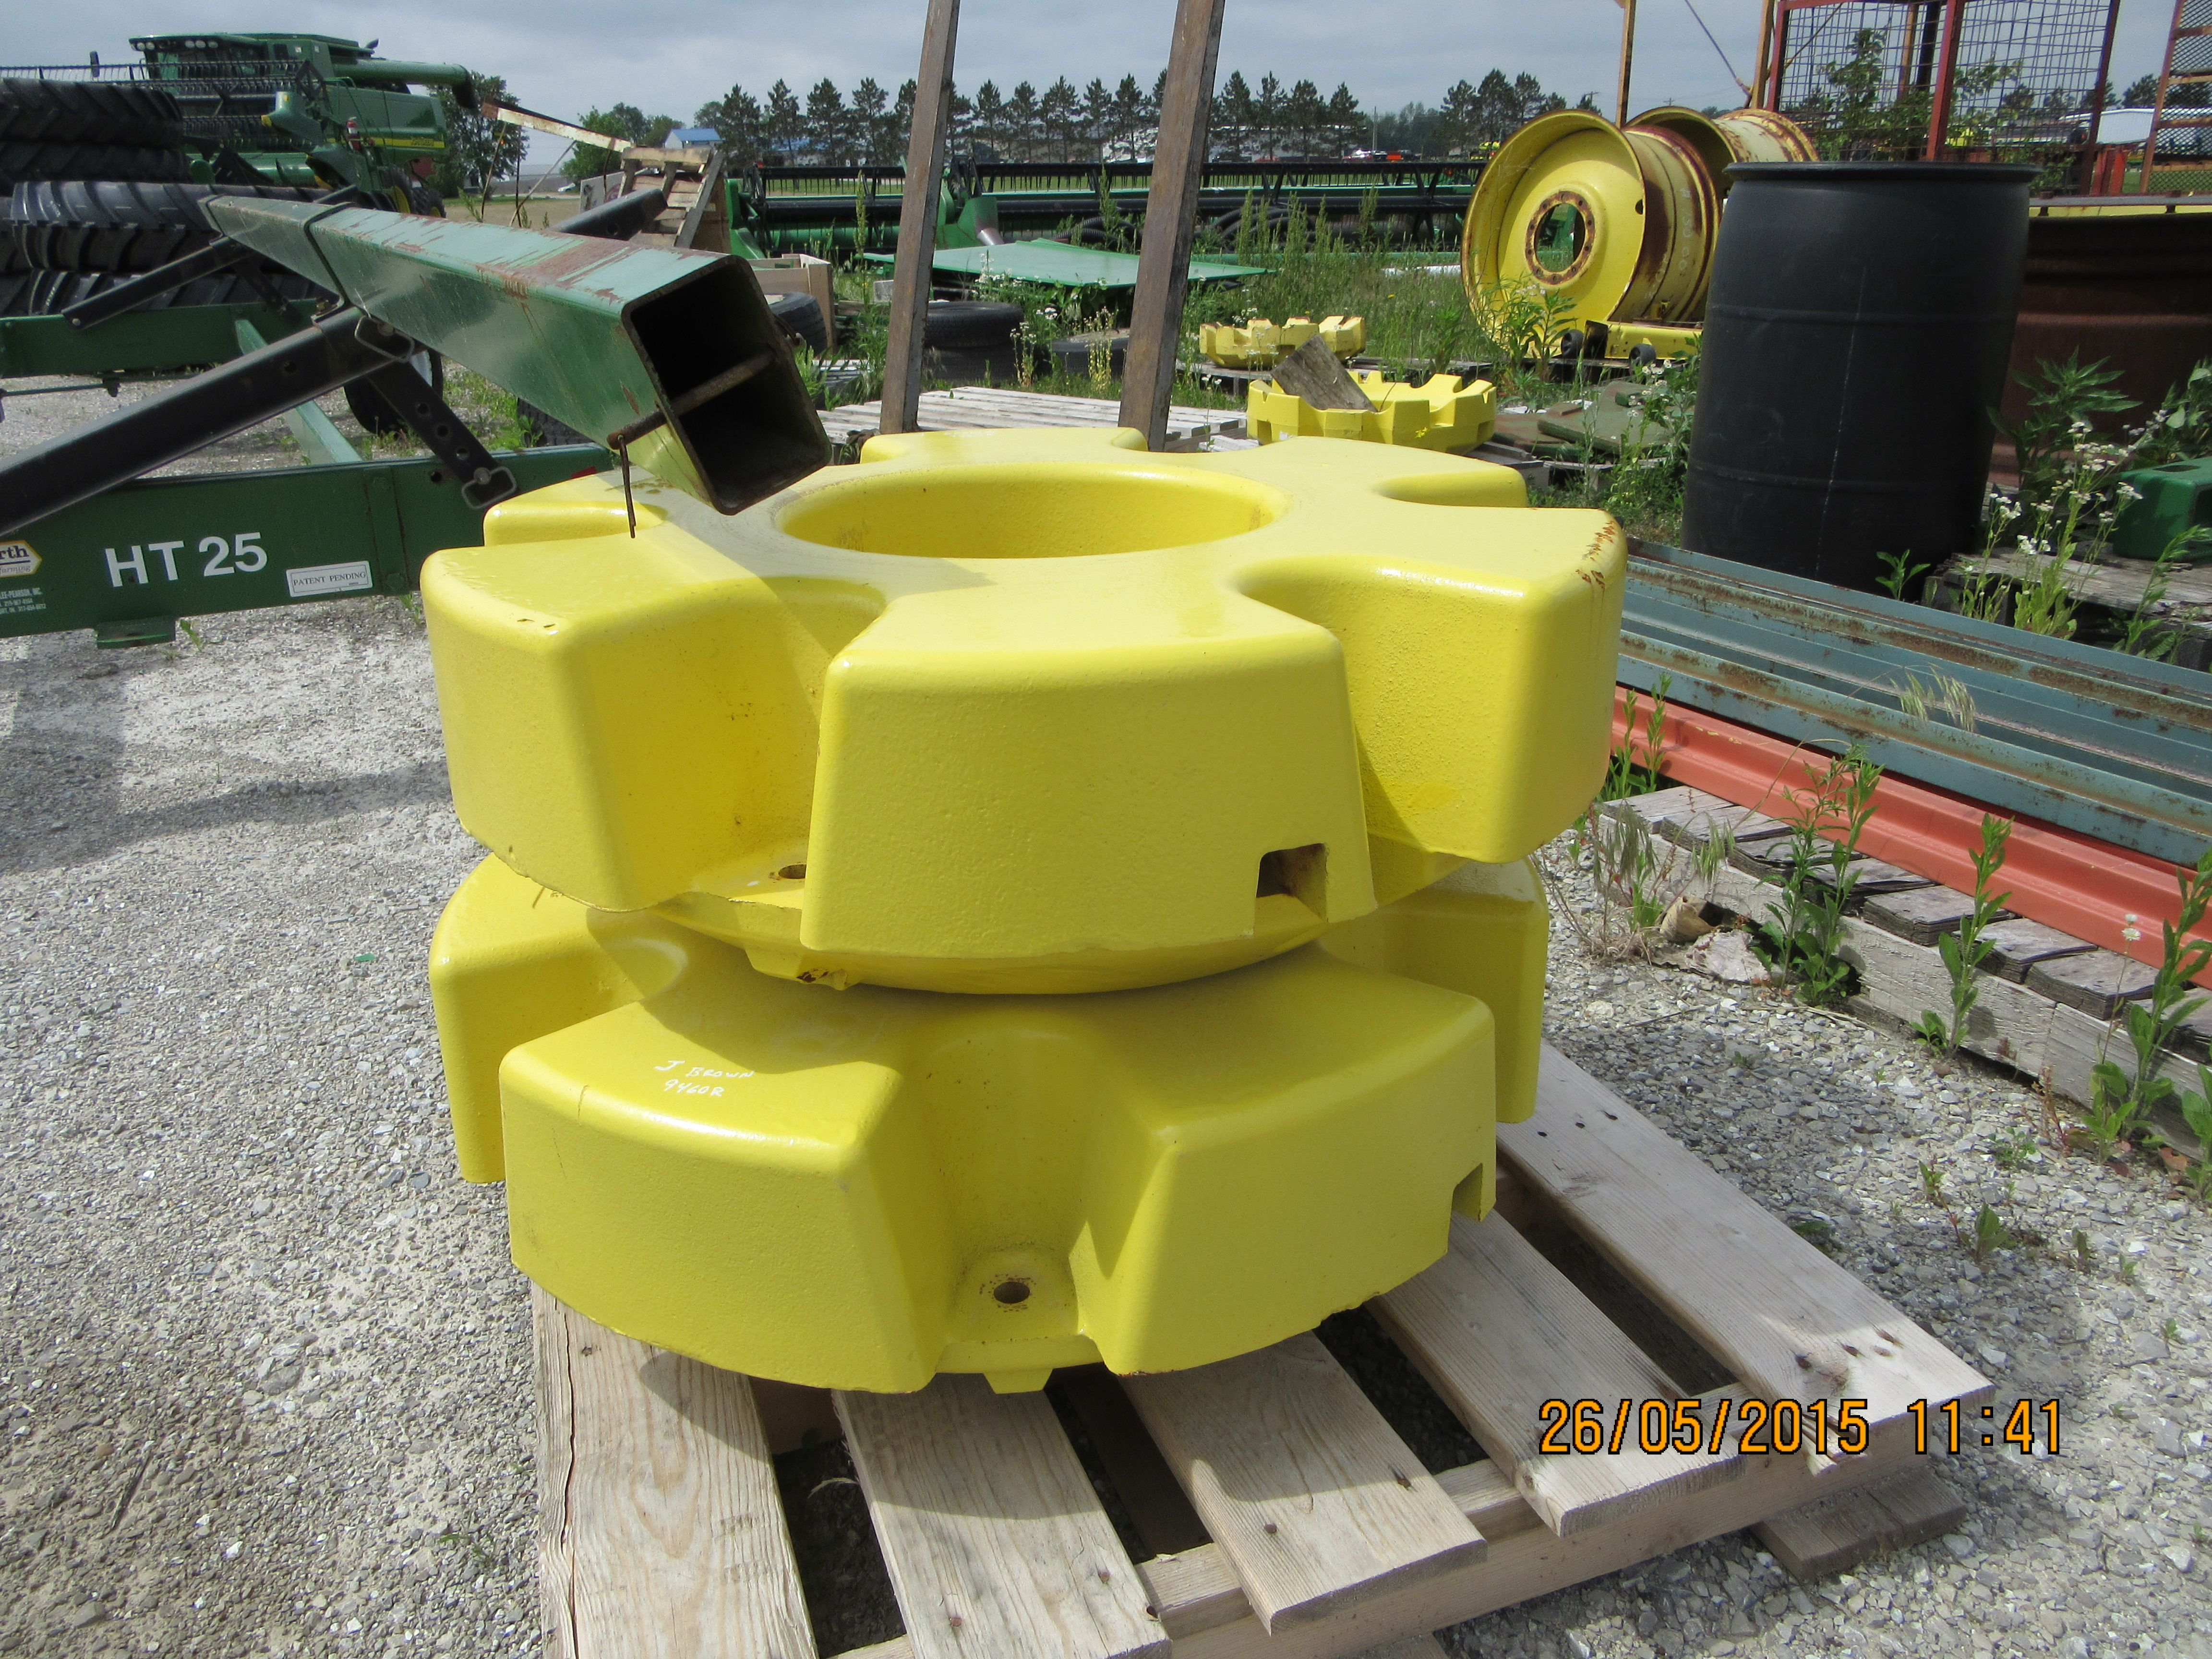 John Deere Tractor Counterweights : These are new john deere r tractor weights